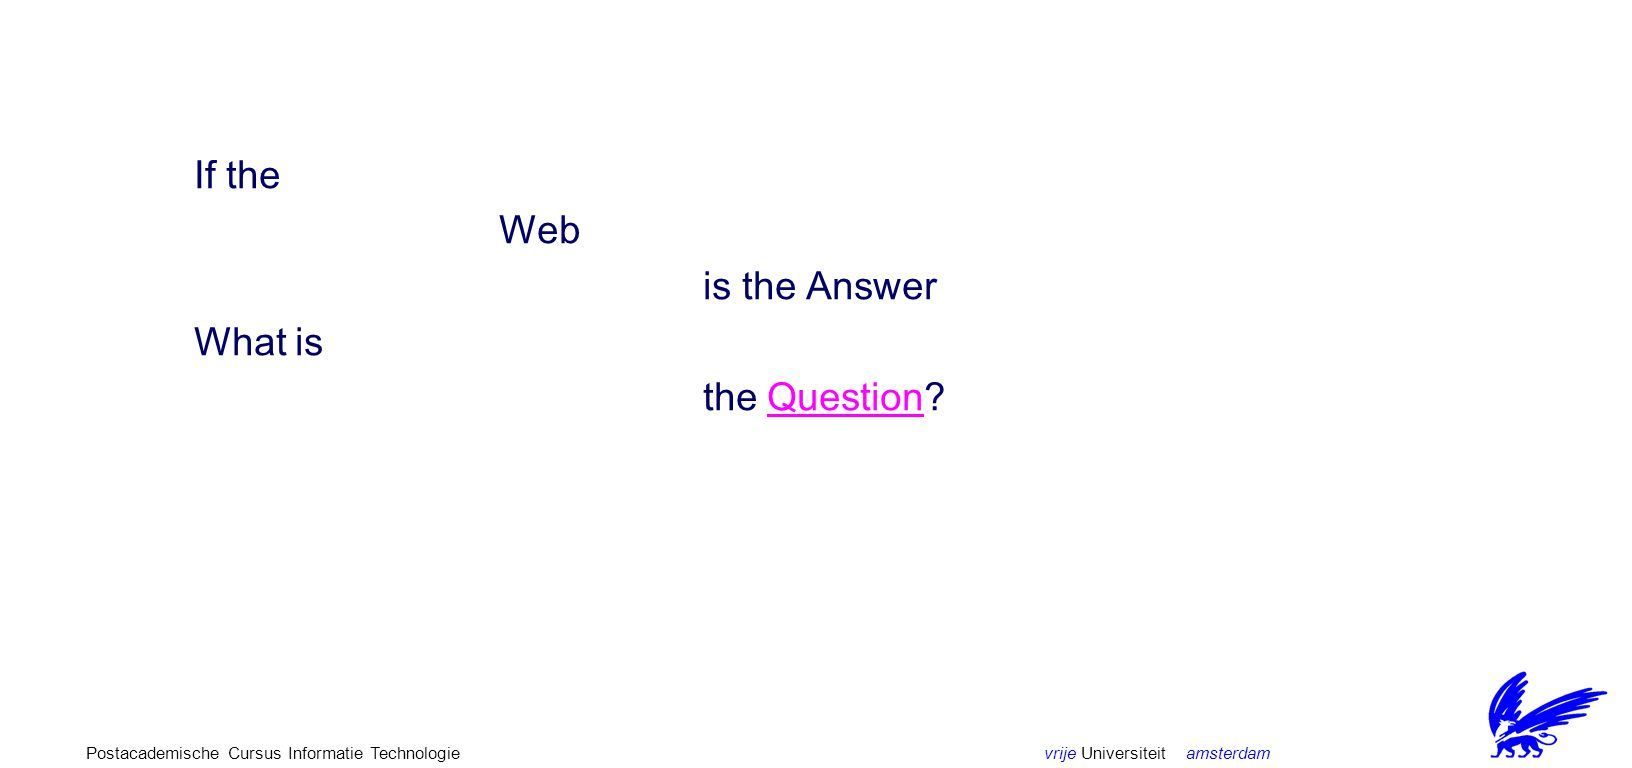 vrije Universiteit amsterdamPostacademische Cursus Informatie Technologie If the Web is the Answer What is the Question?Question